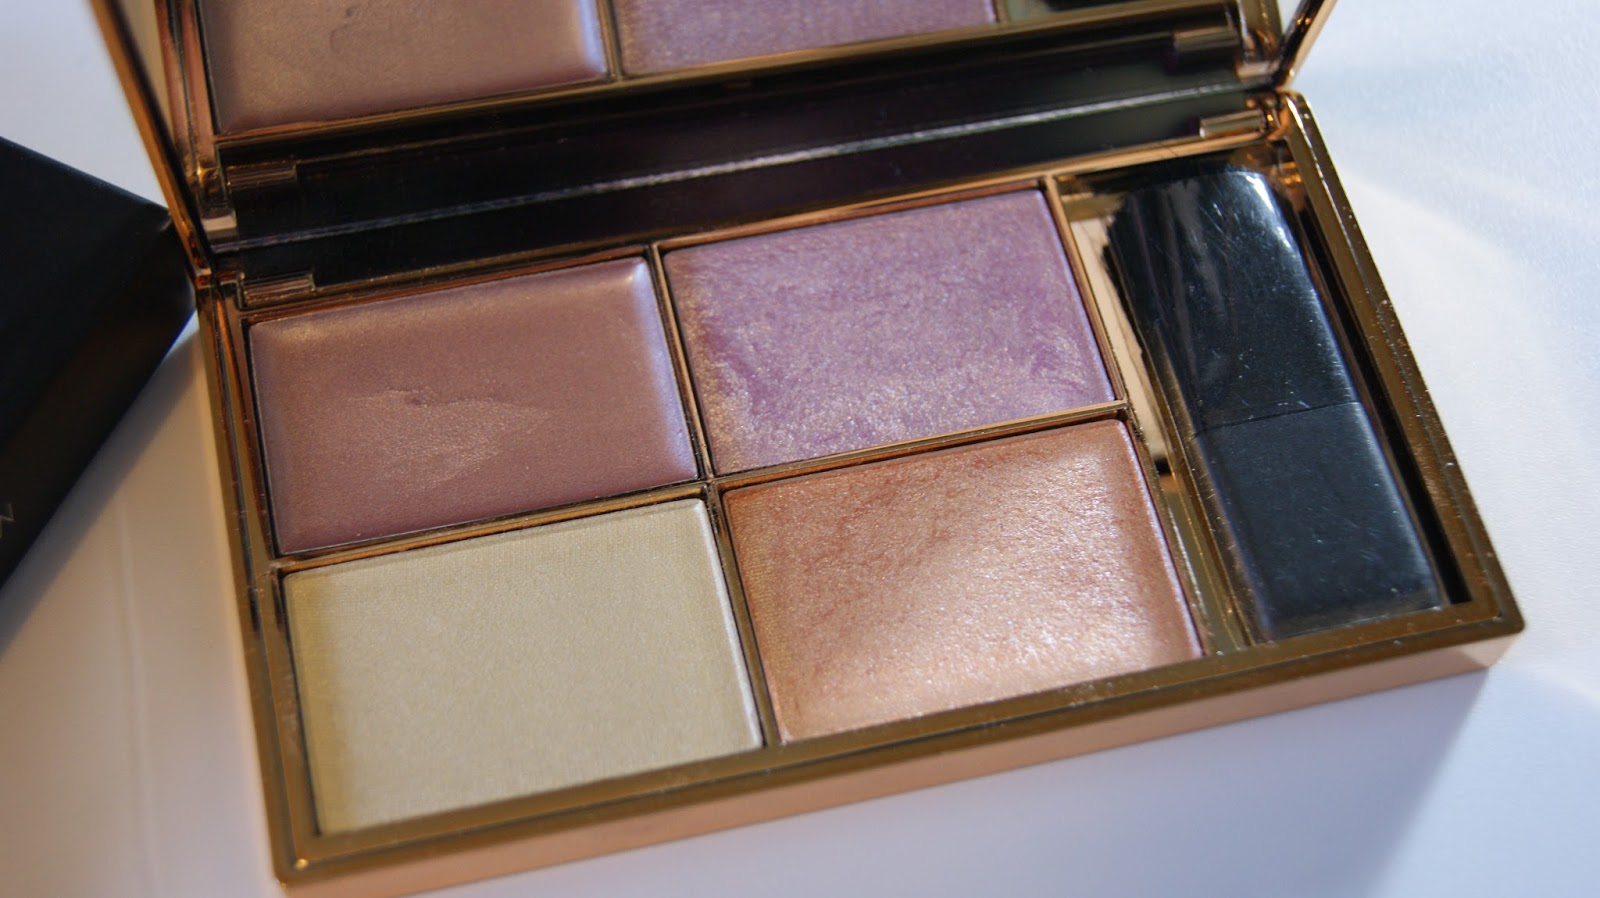 SLEEK MAKEUP SOLSTICE HIGHLIGHTING PALETTE - A Life With ...